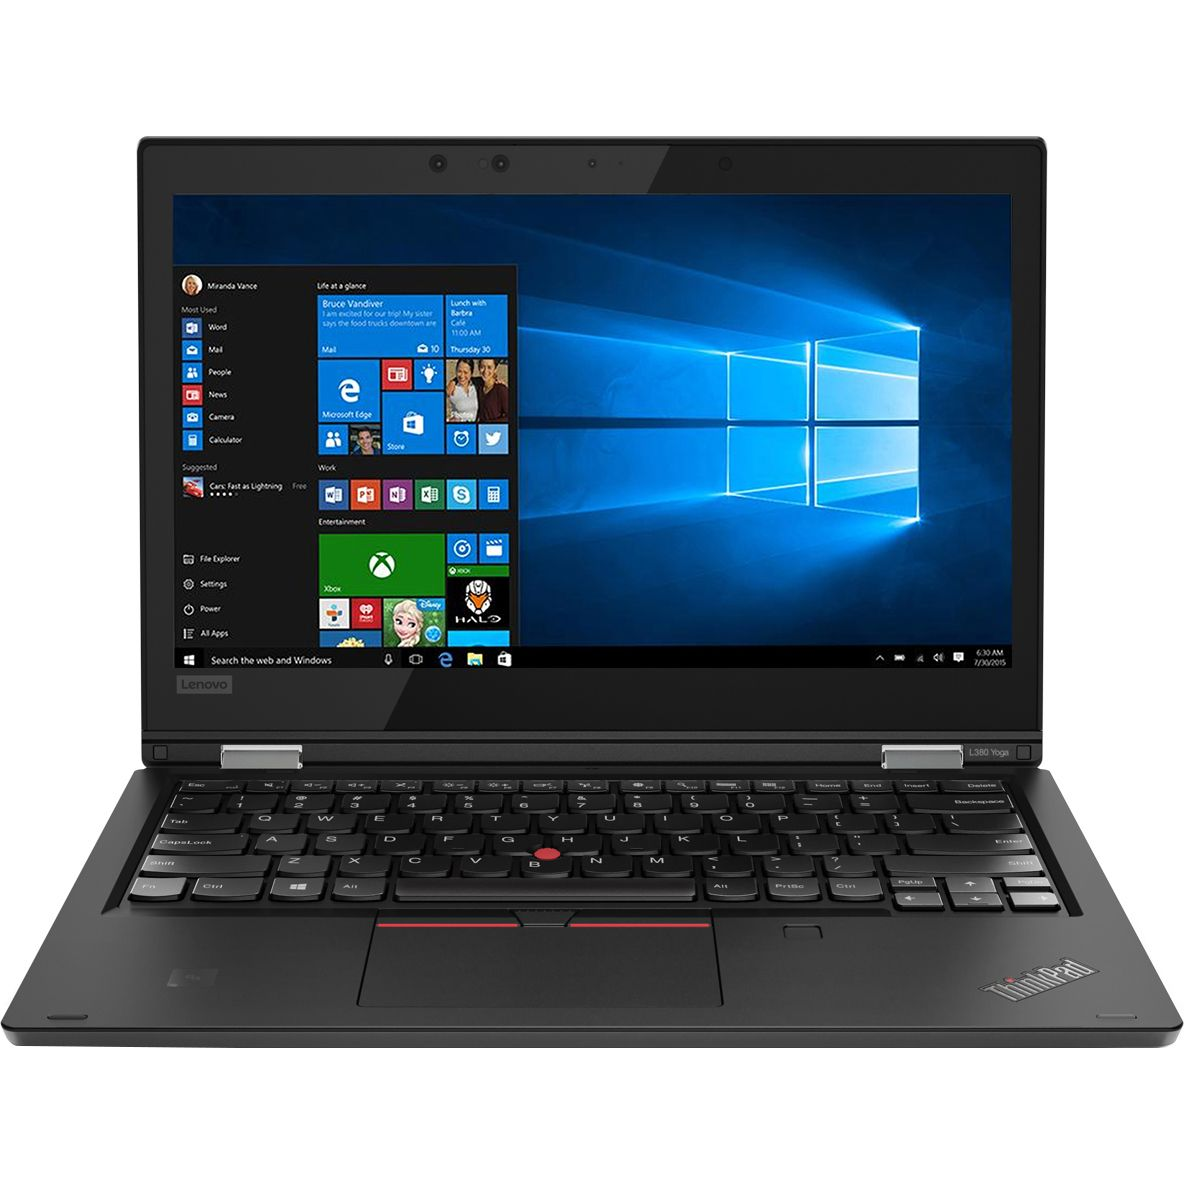 Ultrabook Lenovo ThinkPad L380 Yoga 13.3 Full HD Touch Intel Core i5-8250U RAM 8GB SSD 256GB Windows 10 Pro Negru